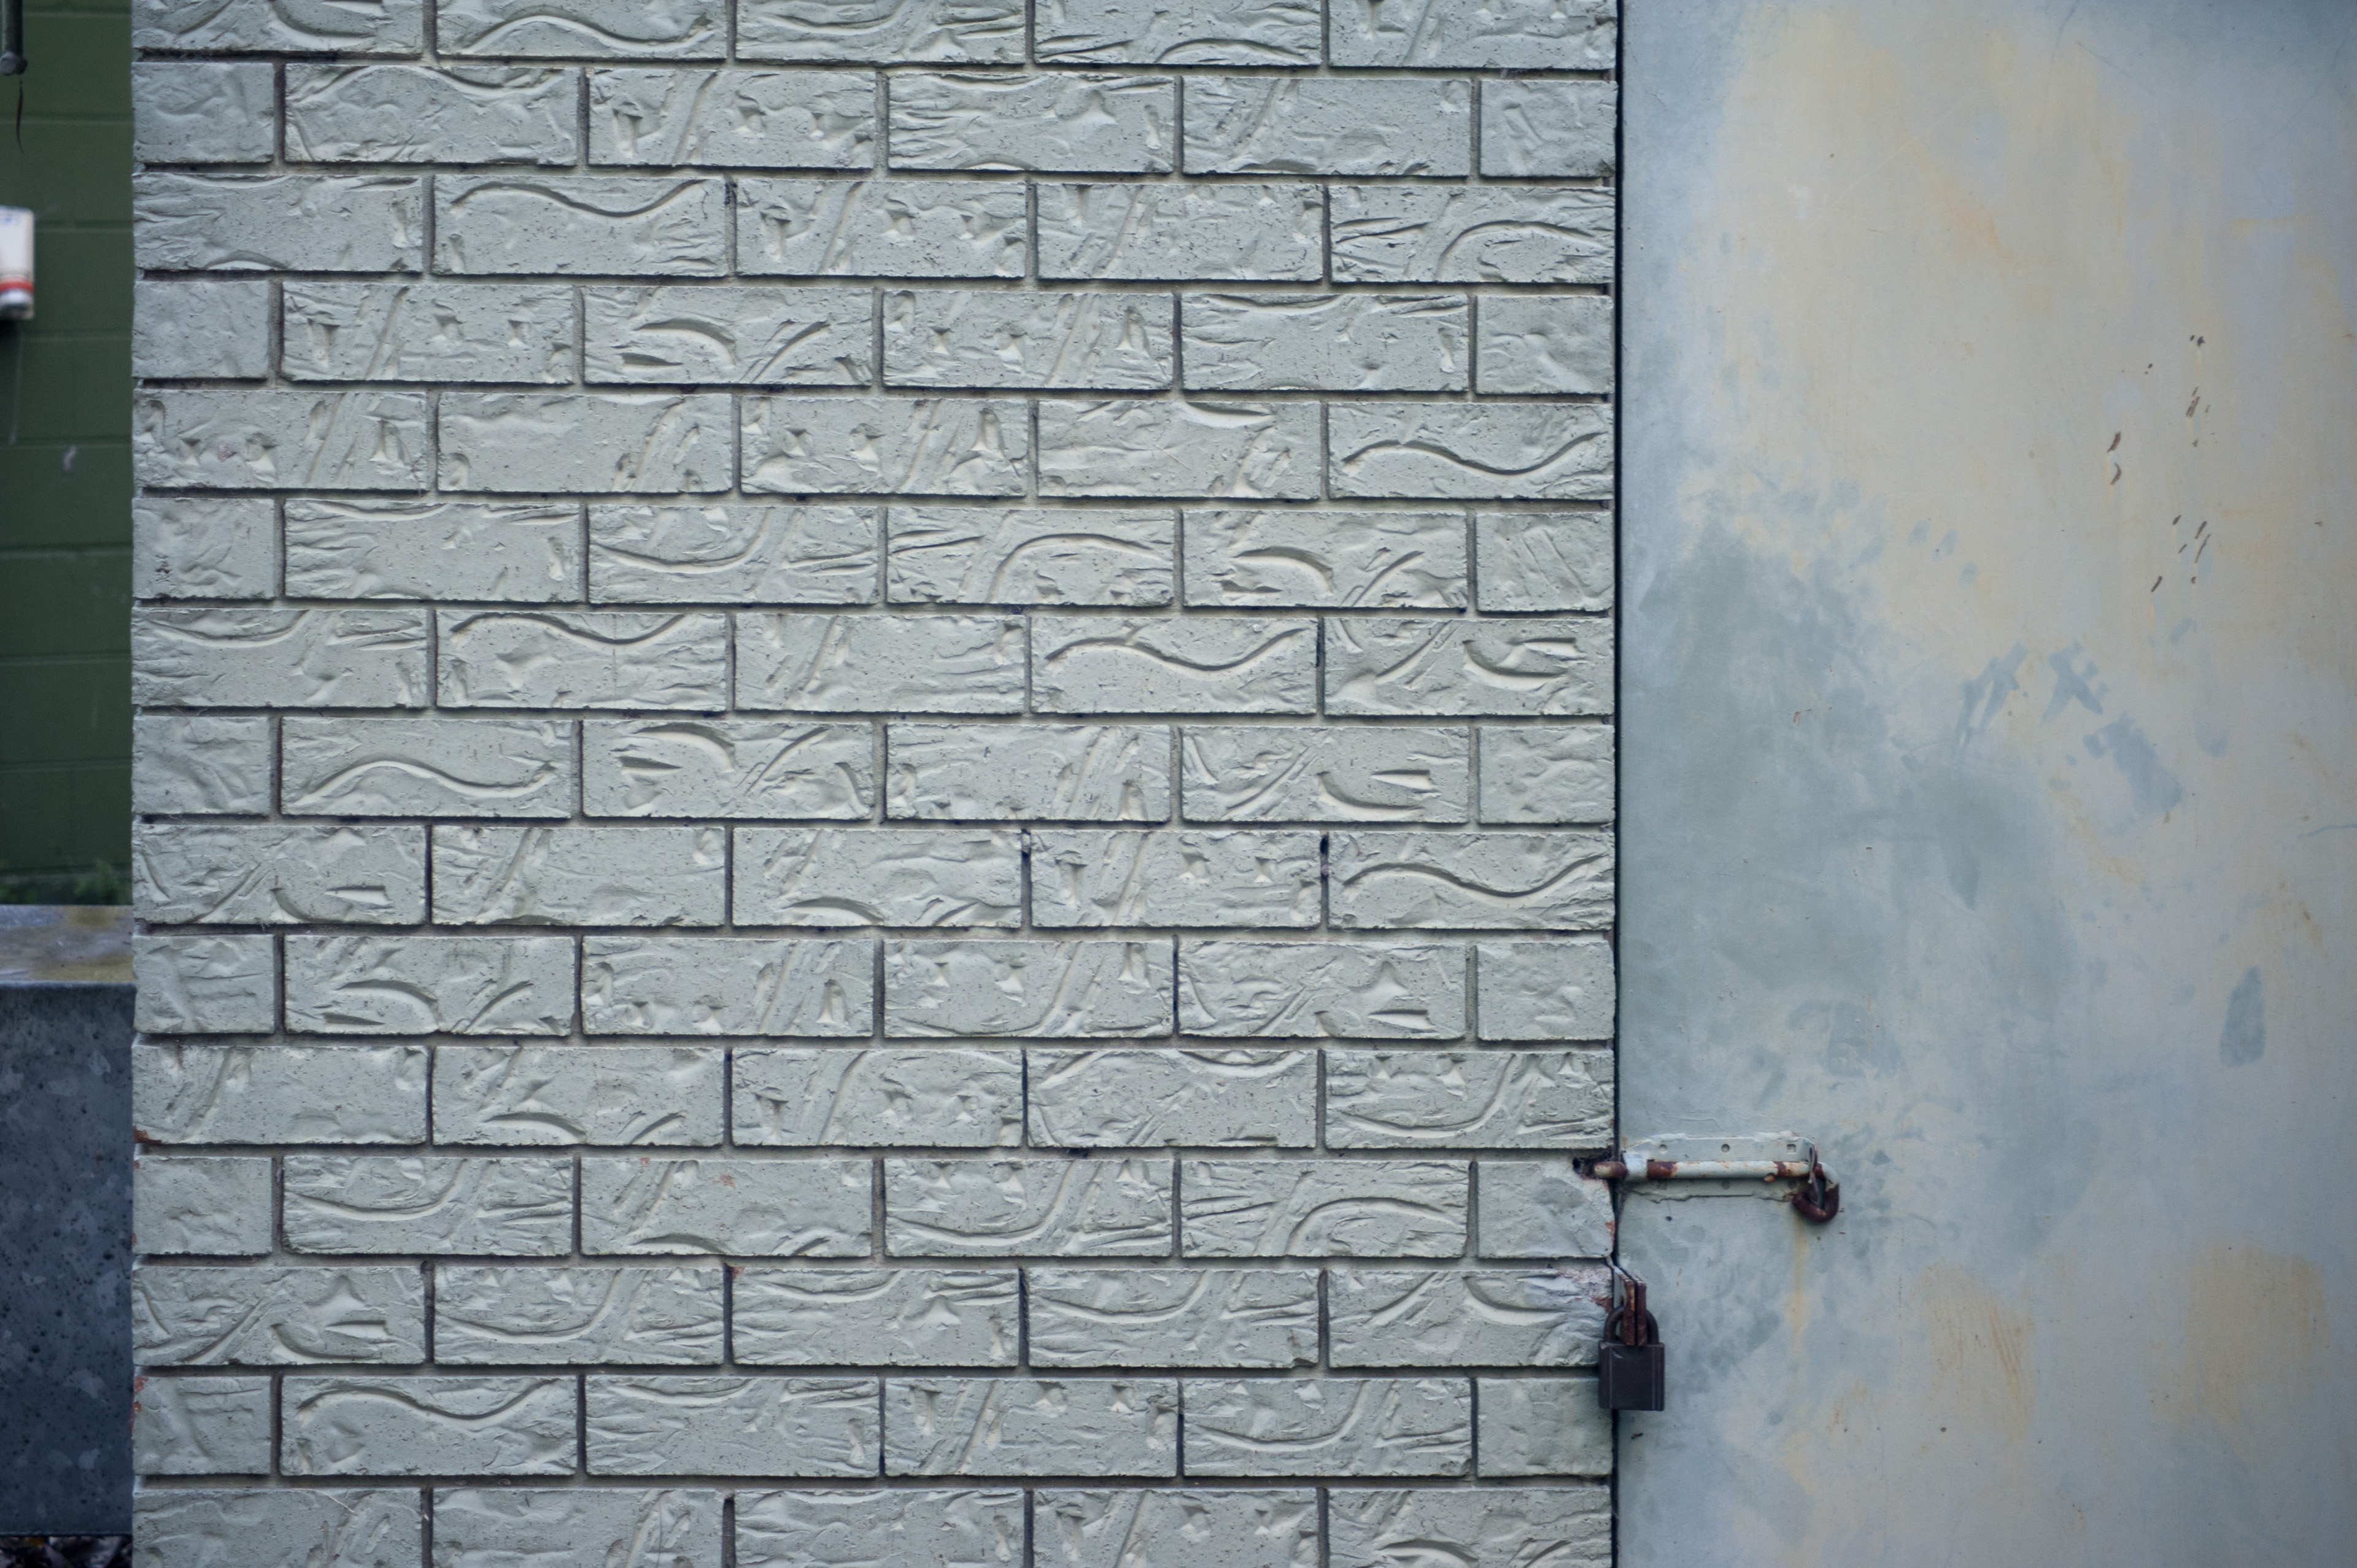 Architectural Detail of White Patterned Brick Wall and Closed Door Secured with Various Locks